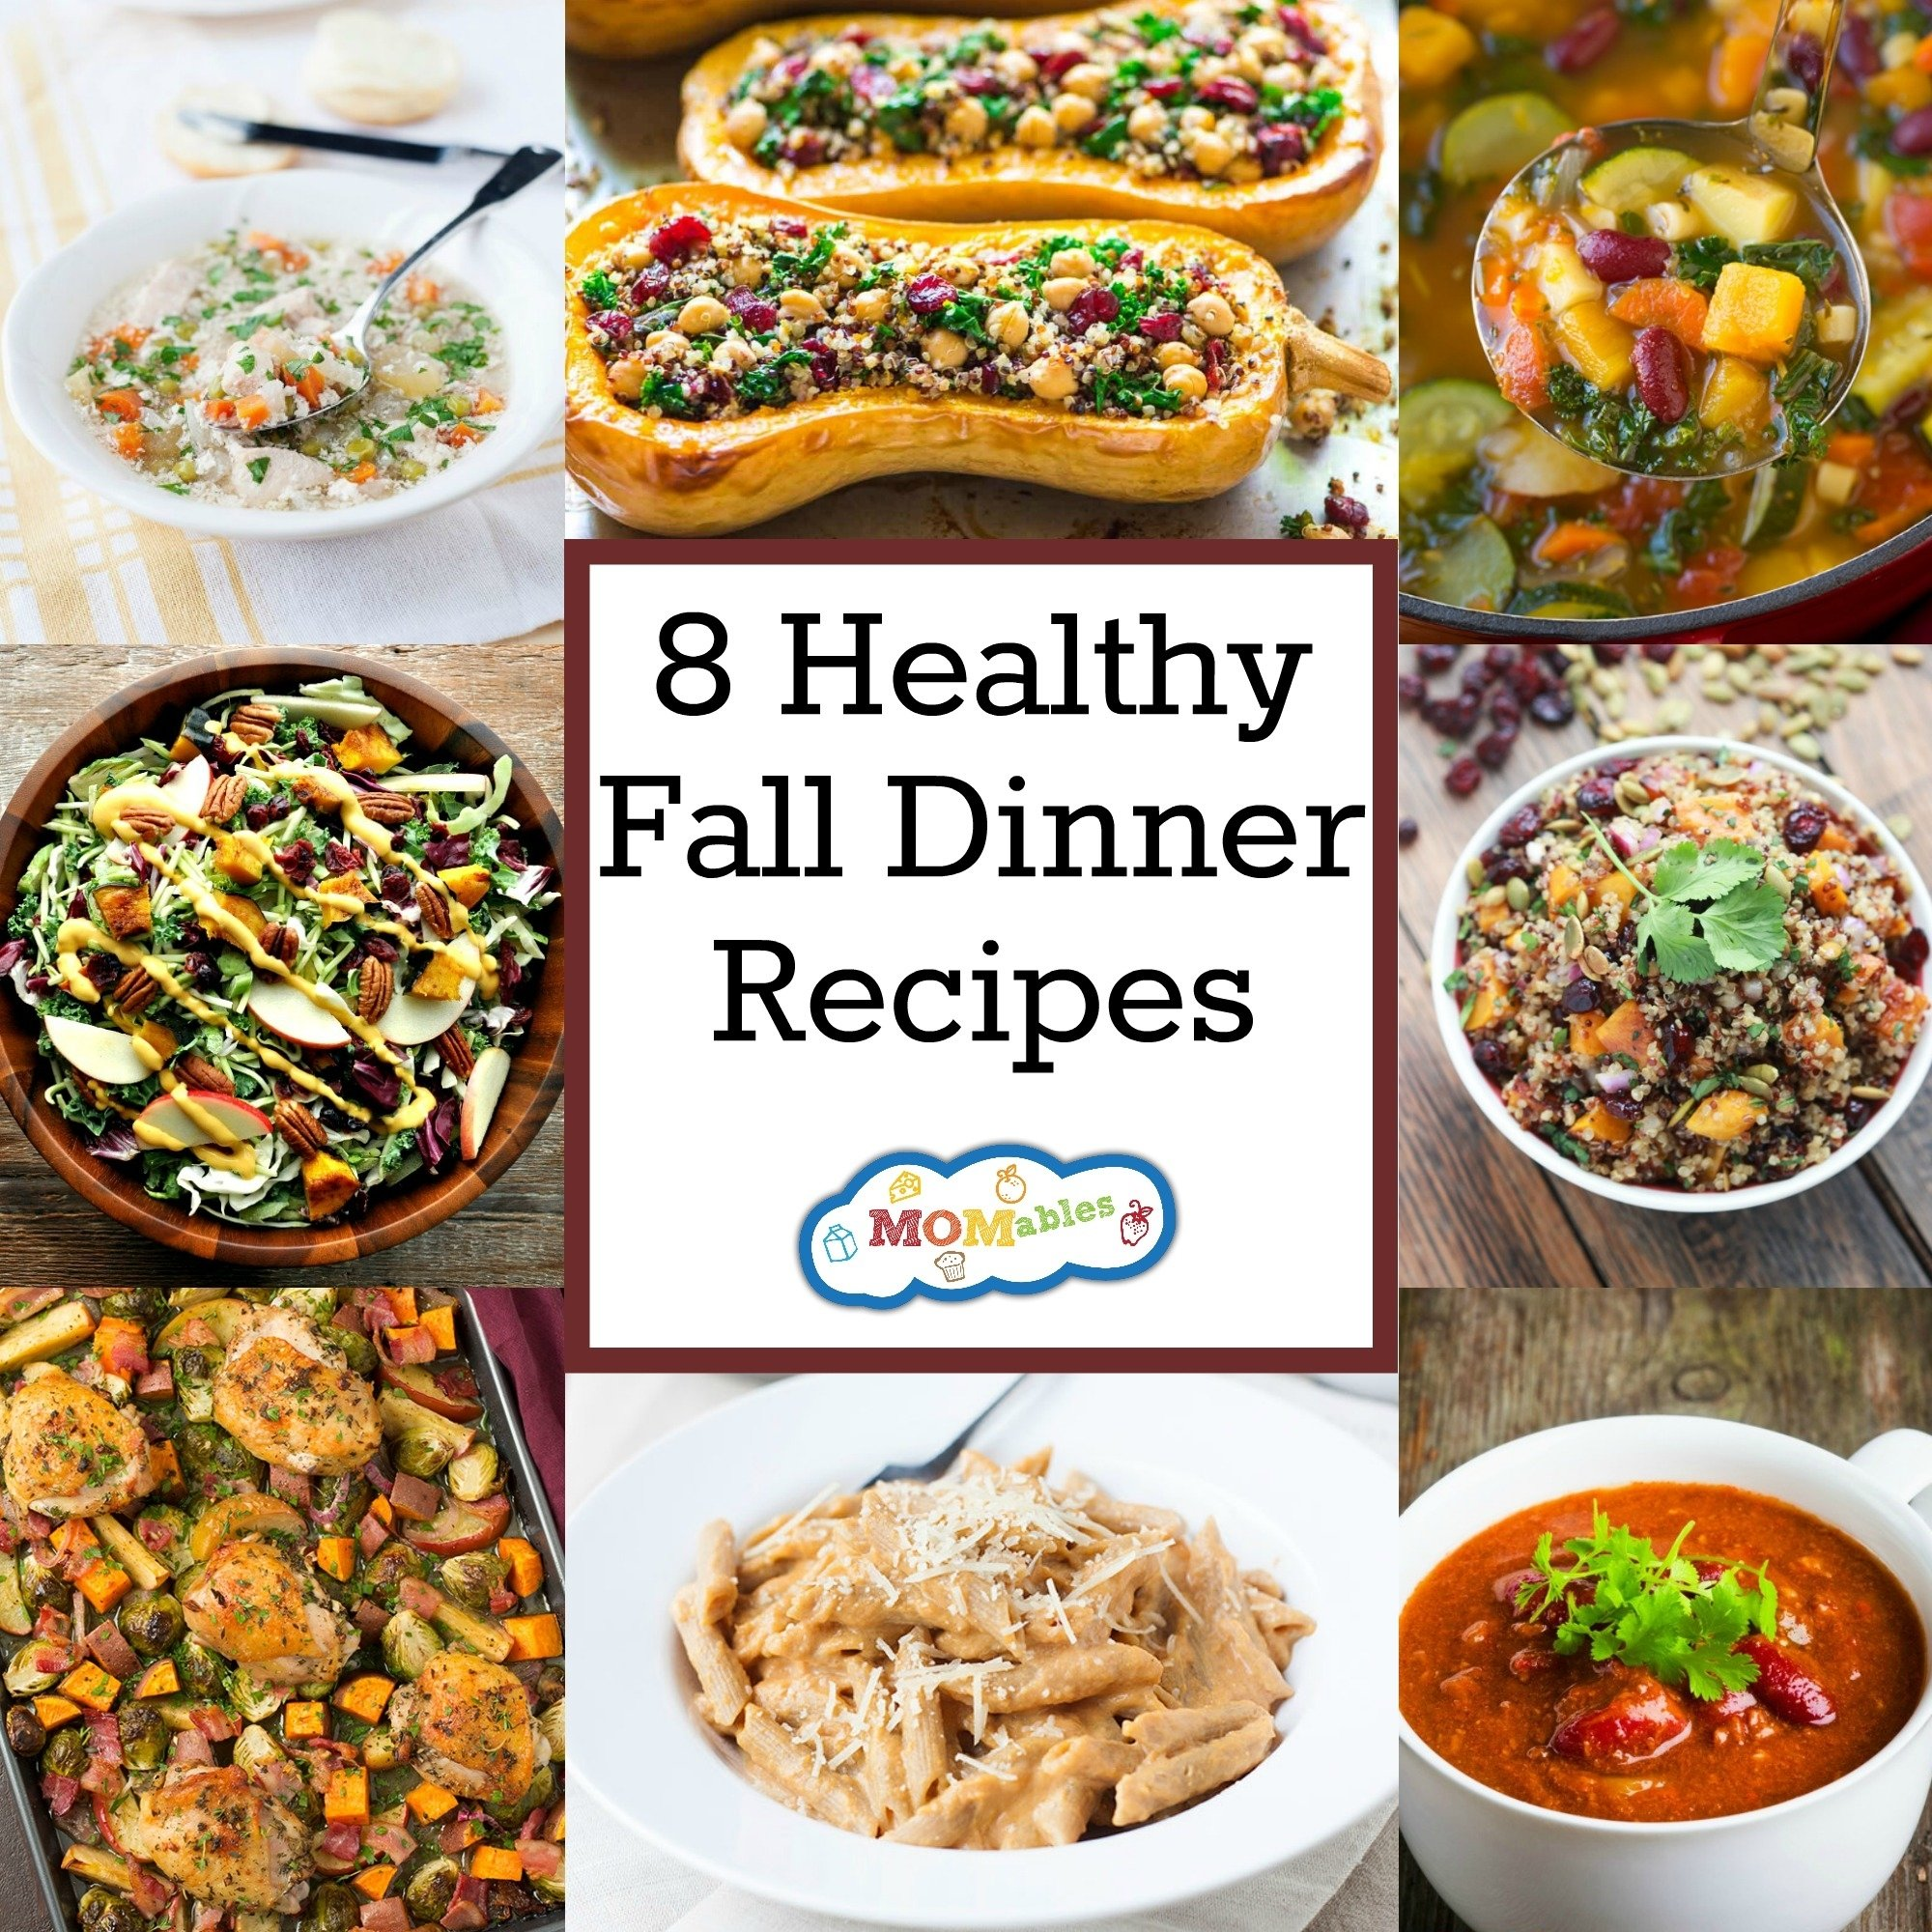 10 Awesome Luncheon Ideas For A Crowd 8 healthy fall dinner recipes momables good food plan on it 9 2020